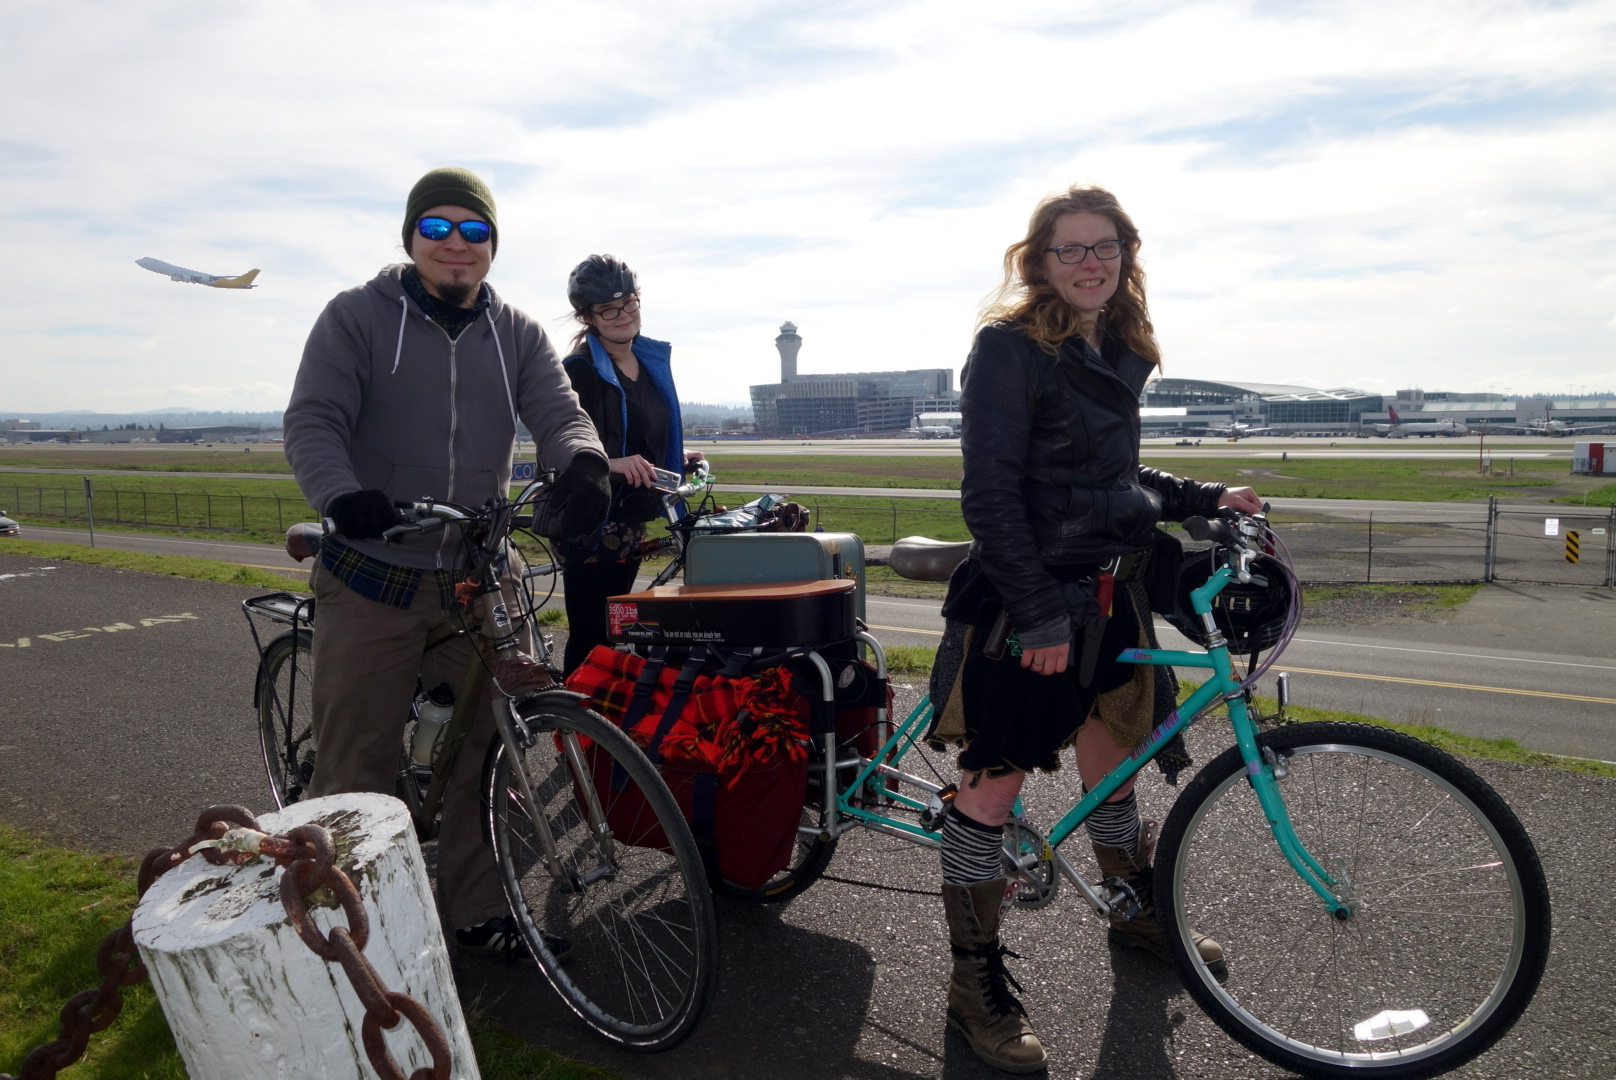 44fff9adfbb User-uploaded image for Bicycle Airport Express NOT launch event